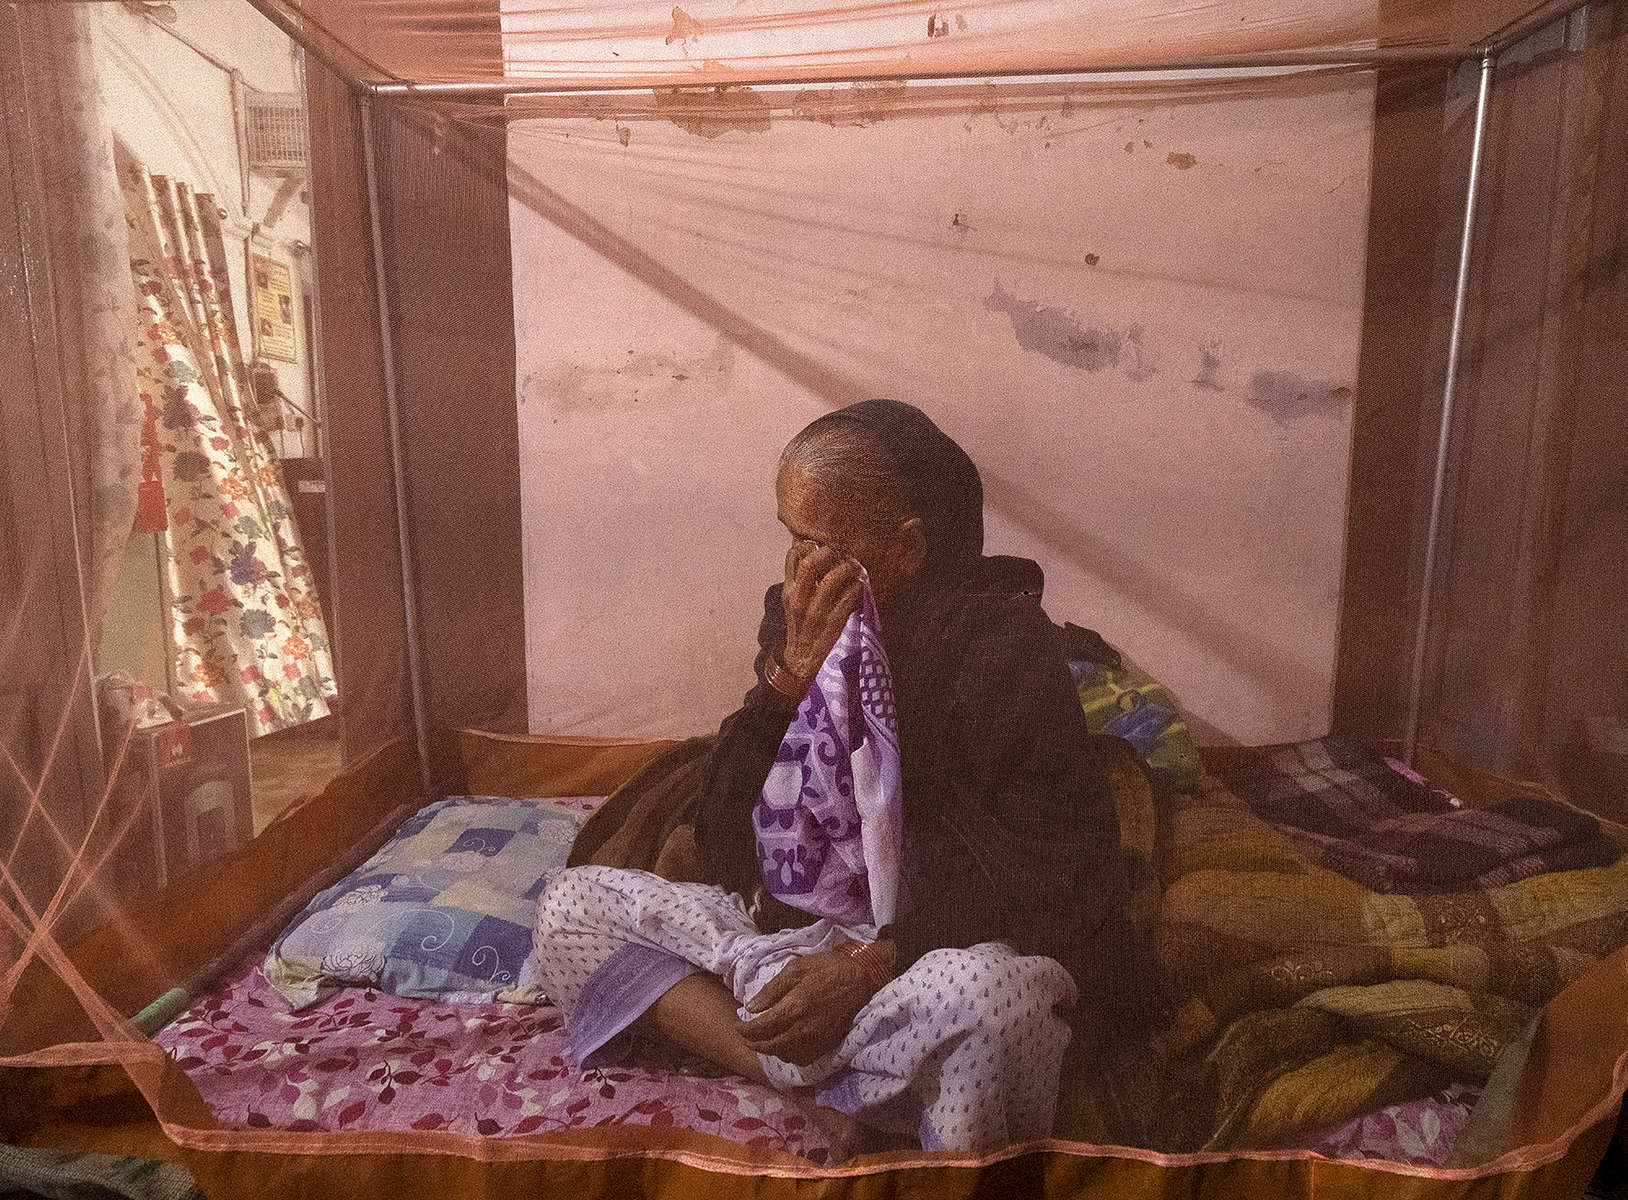 Munni Devi, who estimates she is 90 years old, sitting behind the mosquito net of her bed becomes emotional while talking about her life, at Durga Kund Help Line ashram in Varanasi, India on January 08, 2019. Munni says she doesn't remember the age of her husband - he was a few older than her. A mother of two, one of her sons was kidnapped at the age of 12 and the other son died in an accident. {quote}I worked so hard to educate him hoping that one day he will become an engineer and take care of me. But God had other plans. I have no one, I can't cry to anyone,{quote} she says, adding that she was left out on the streets following her husband's death, as her landlord sold her rented home. {quote}Now I have been here for some time, thinking about why God did this to me and passing my time.{quote}